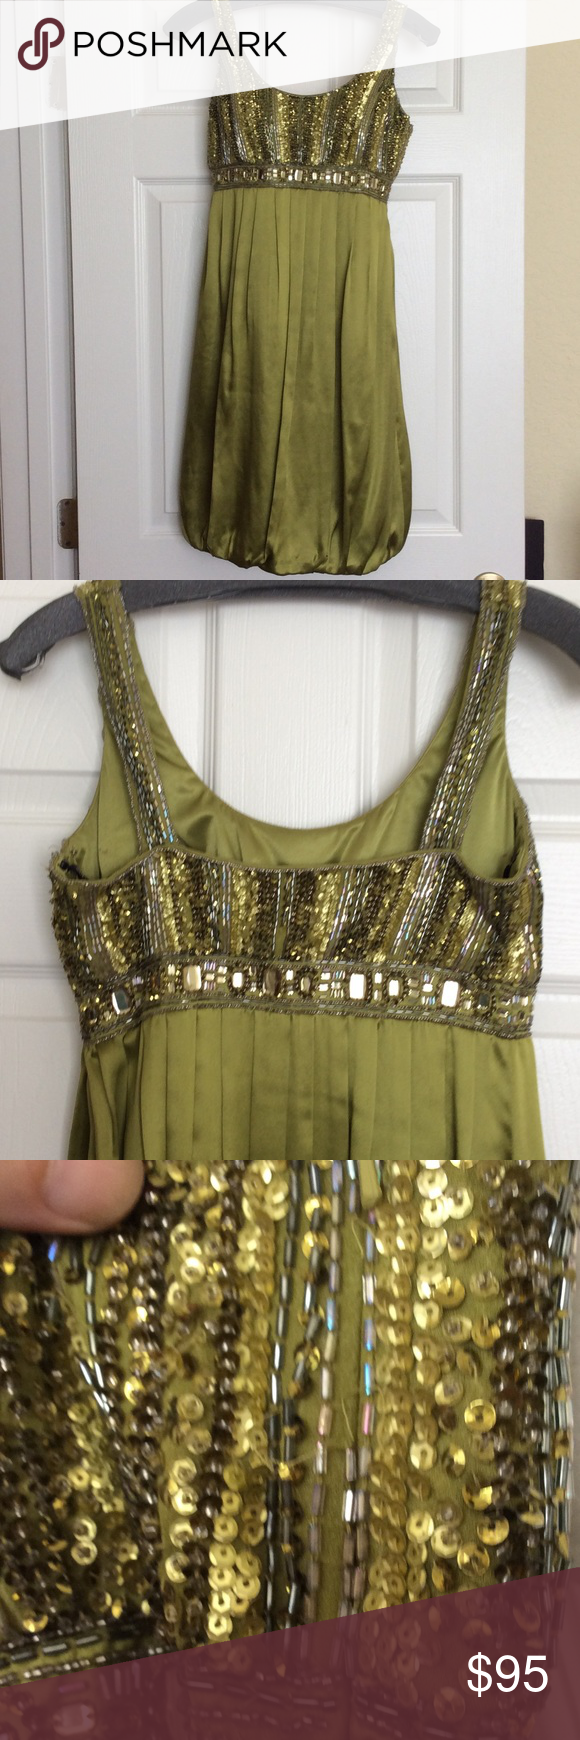 Sue Wong Size 4 Olive Silk Cocktail dress. Olive green Silk bubble dress with hand beaded bodice both front and back, side zipper., bead pack included.  Several beads missing along zipper that need replaced. Sue Wong Dresses Midi